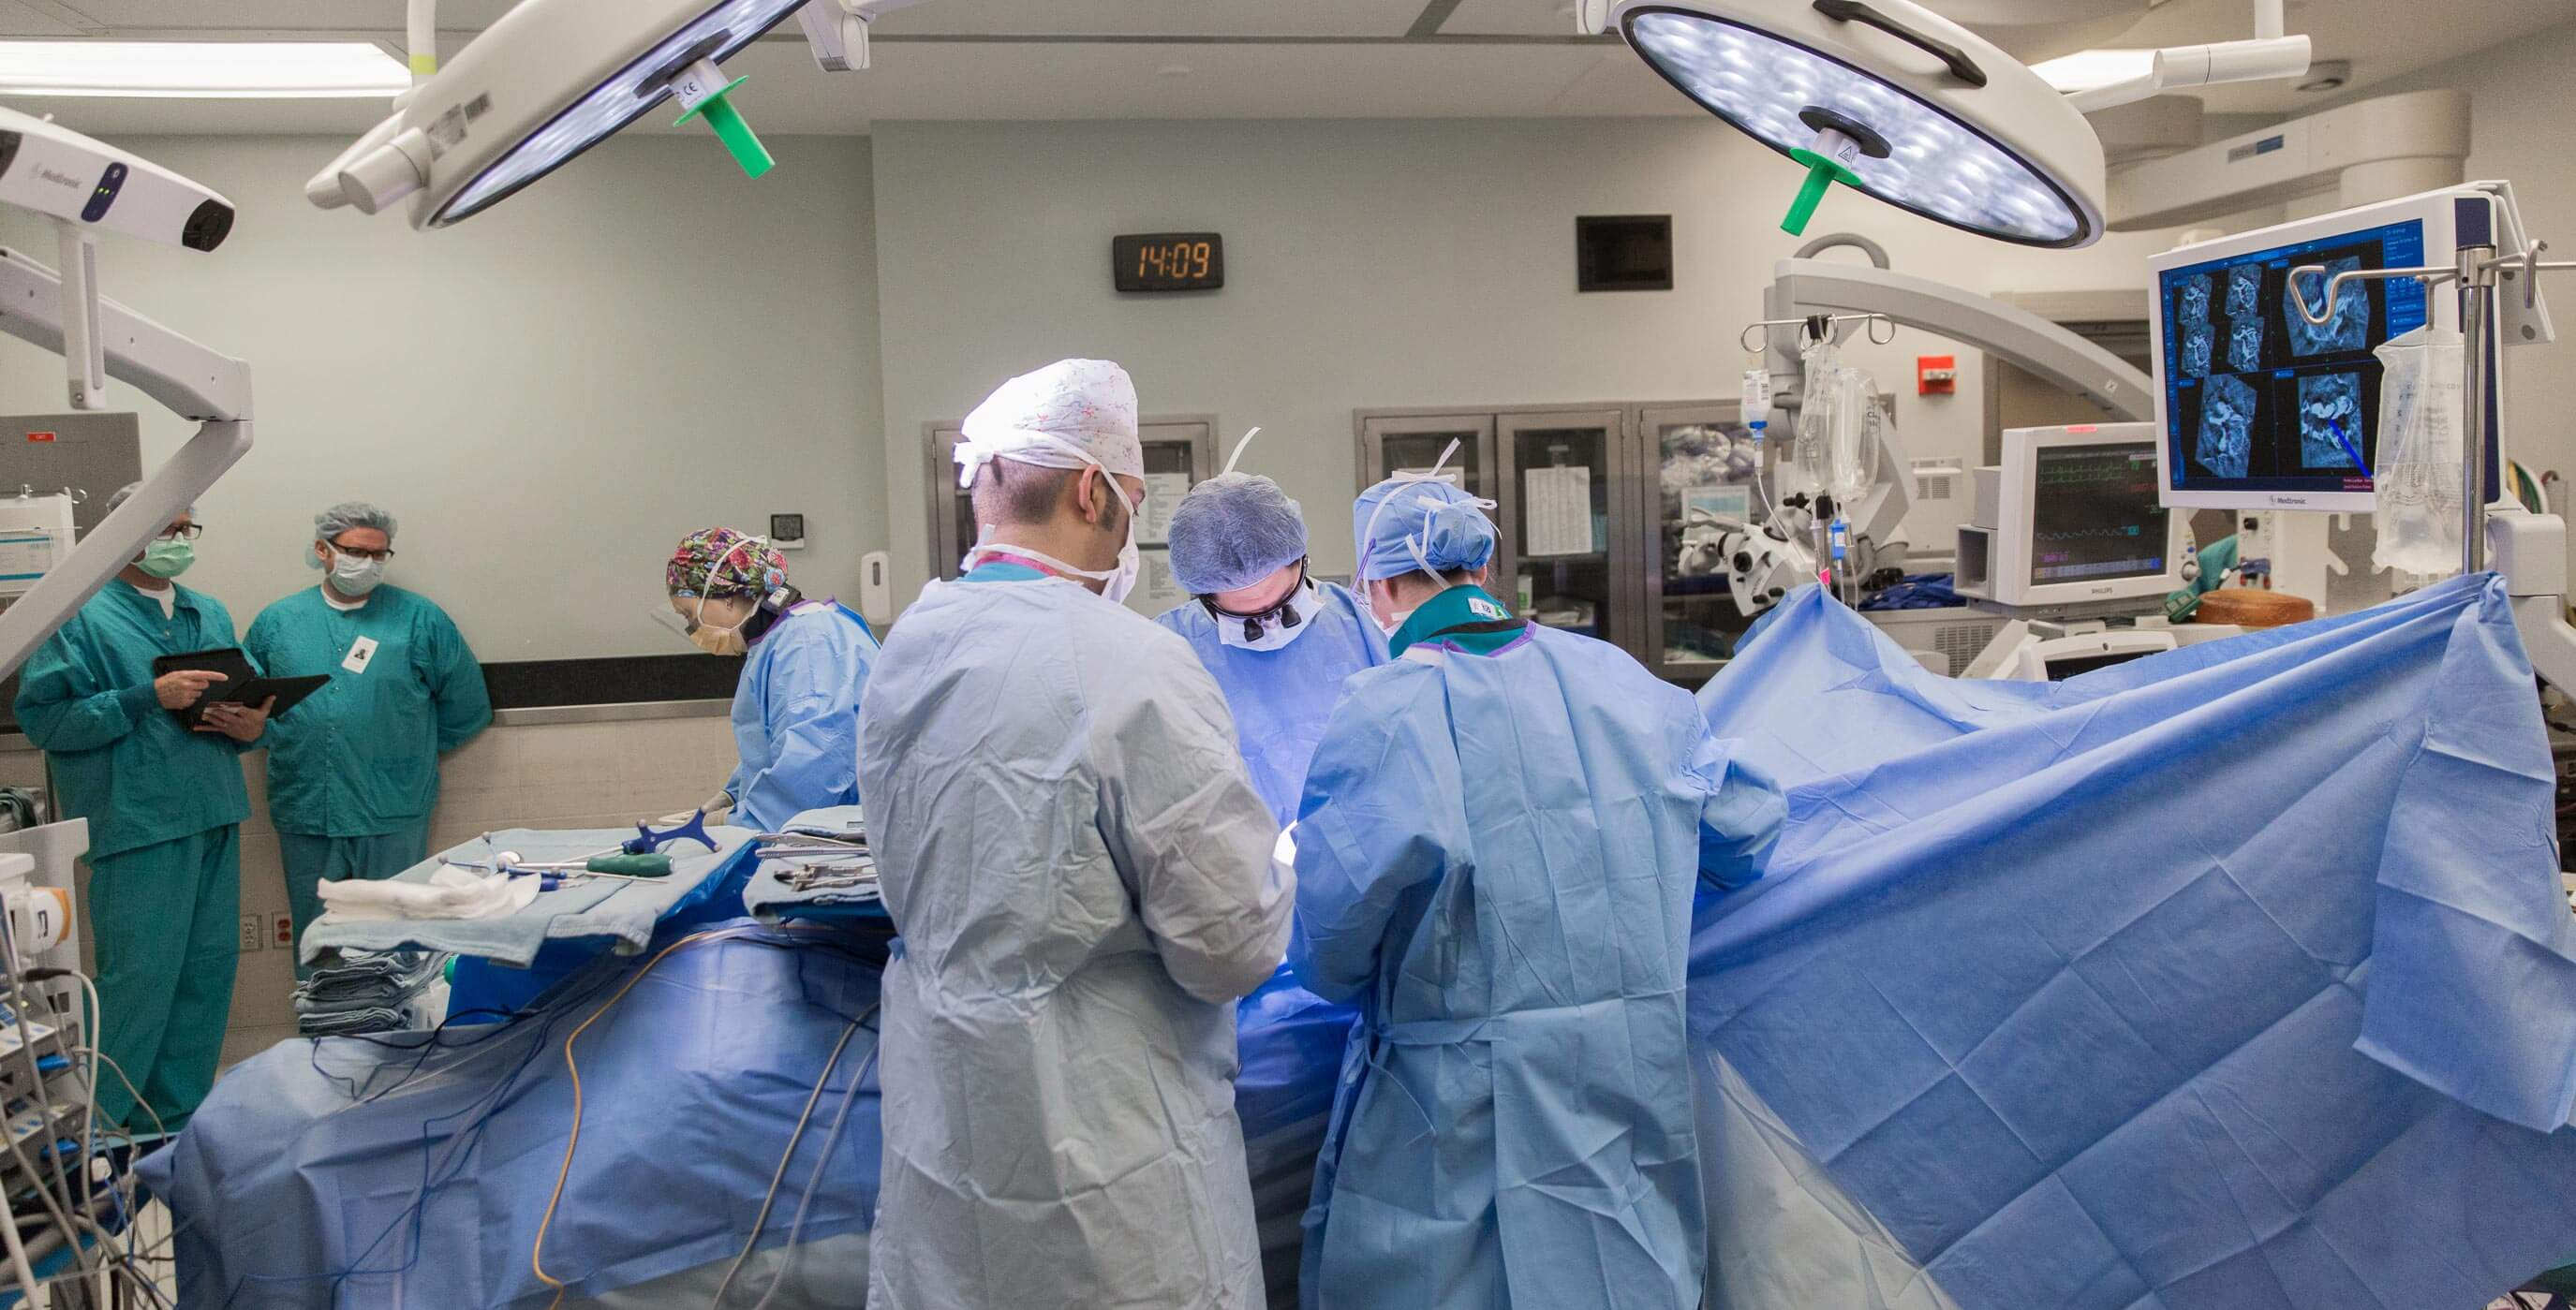 Surgical Services at Overlake